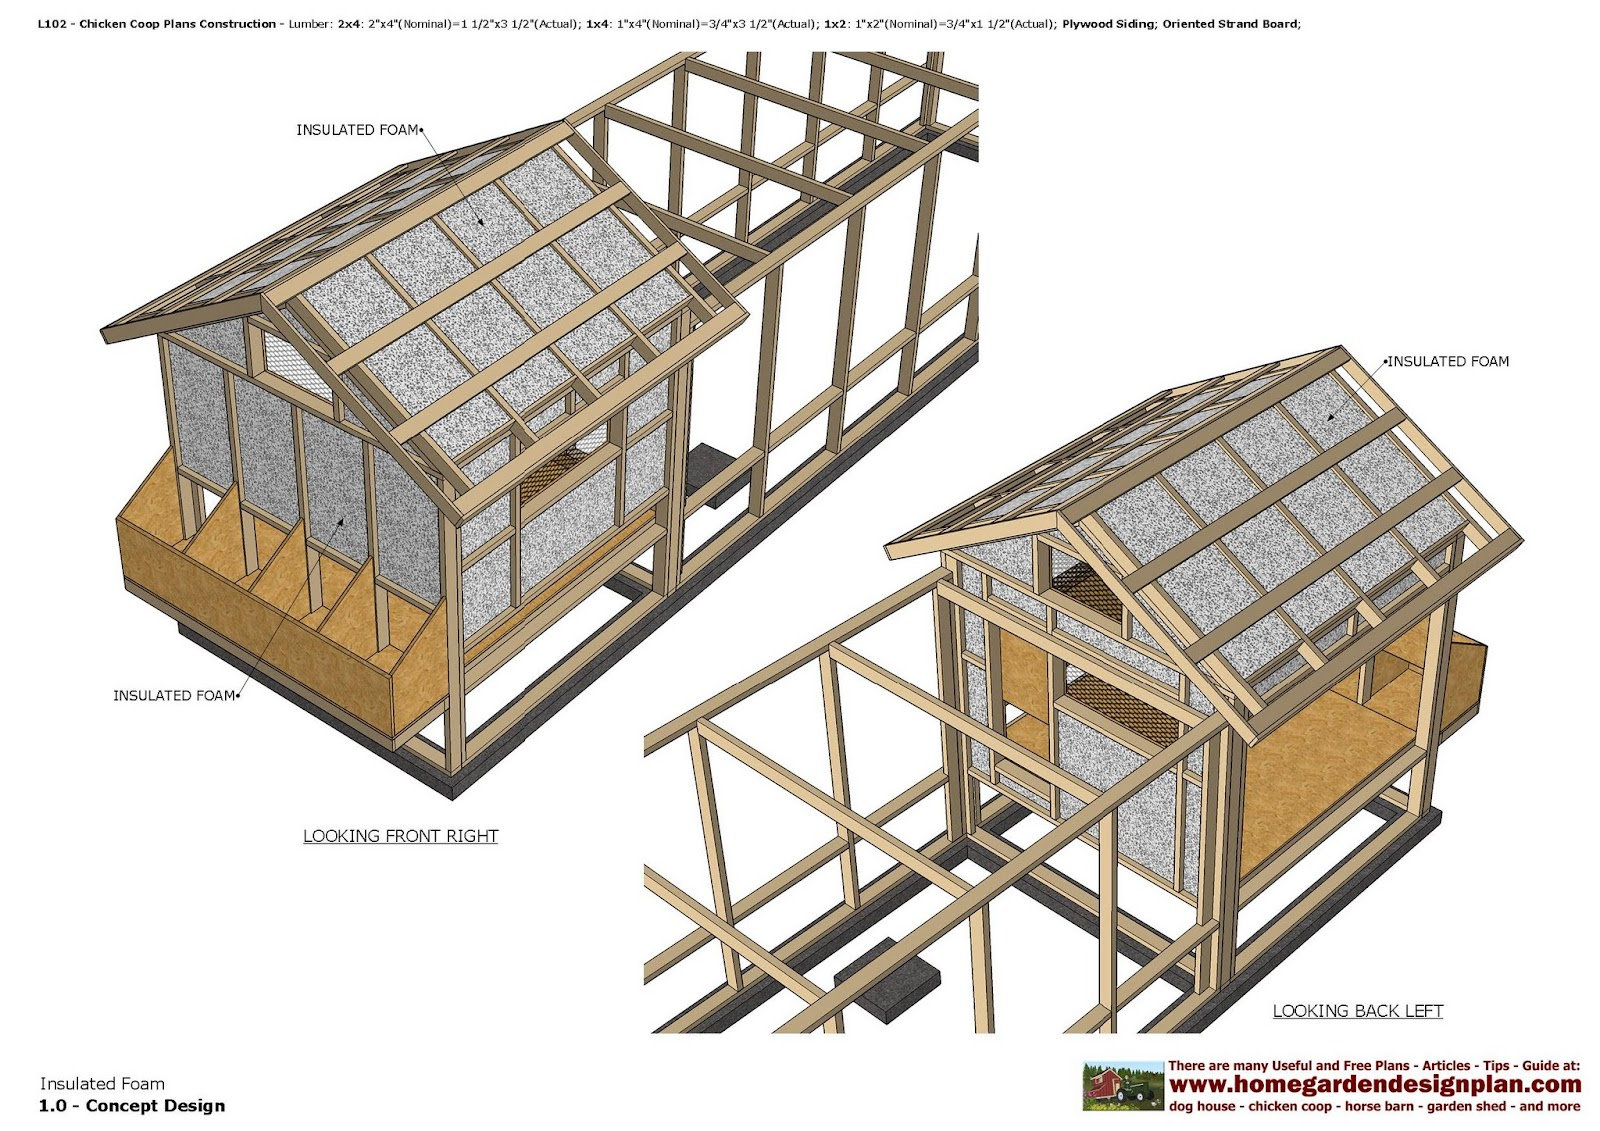 Home garden plans l102 chicken coop plans construction for Free coop plans